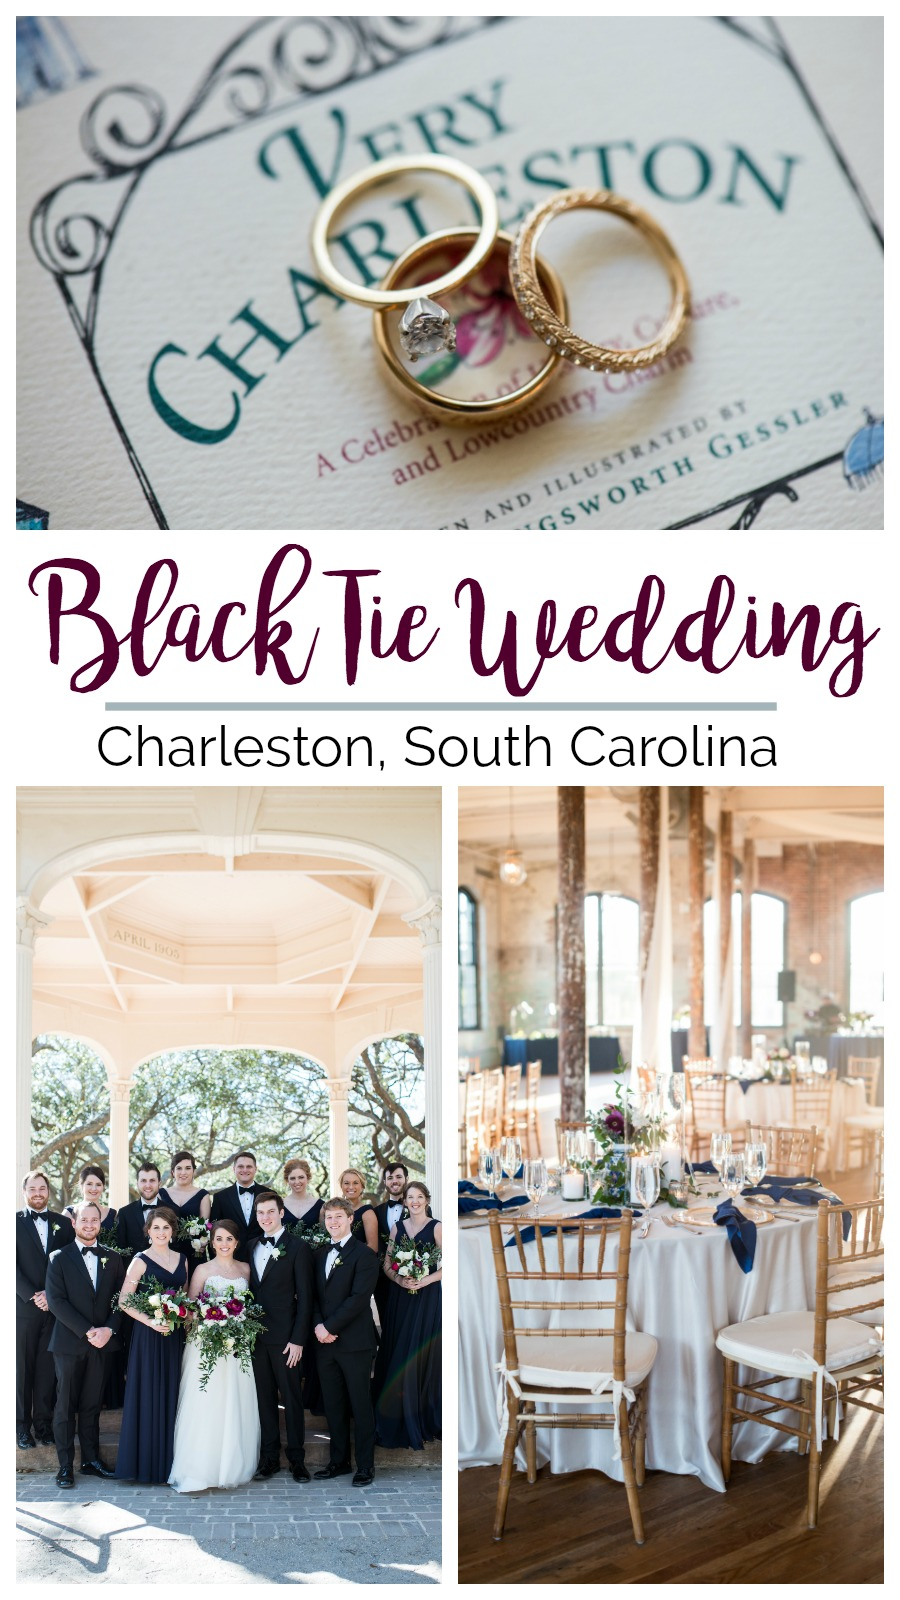 Kate and Heath: Black Tie Wedding at the Cedar Room in Charleston, South Carolina | Palmetto State Weddings | Maria Grace Photography